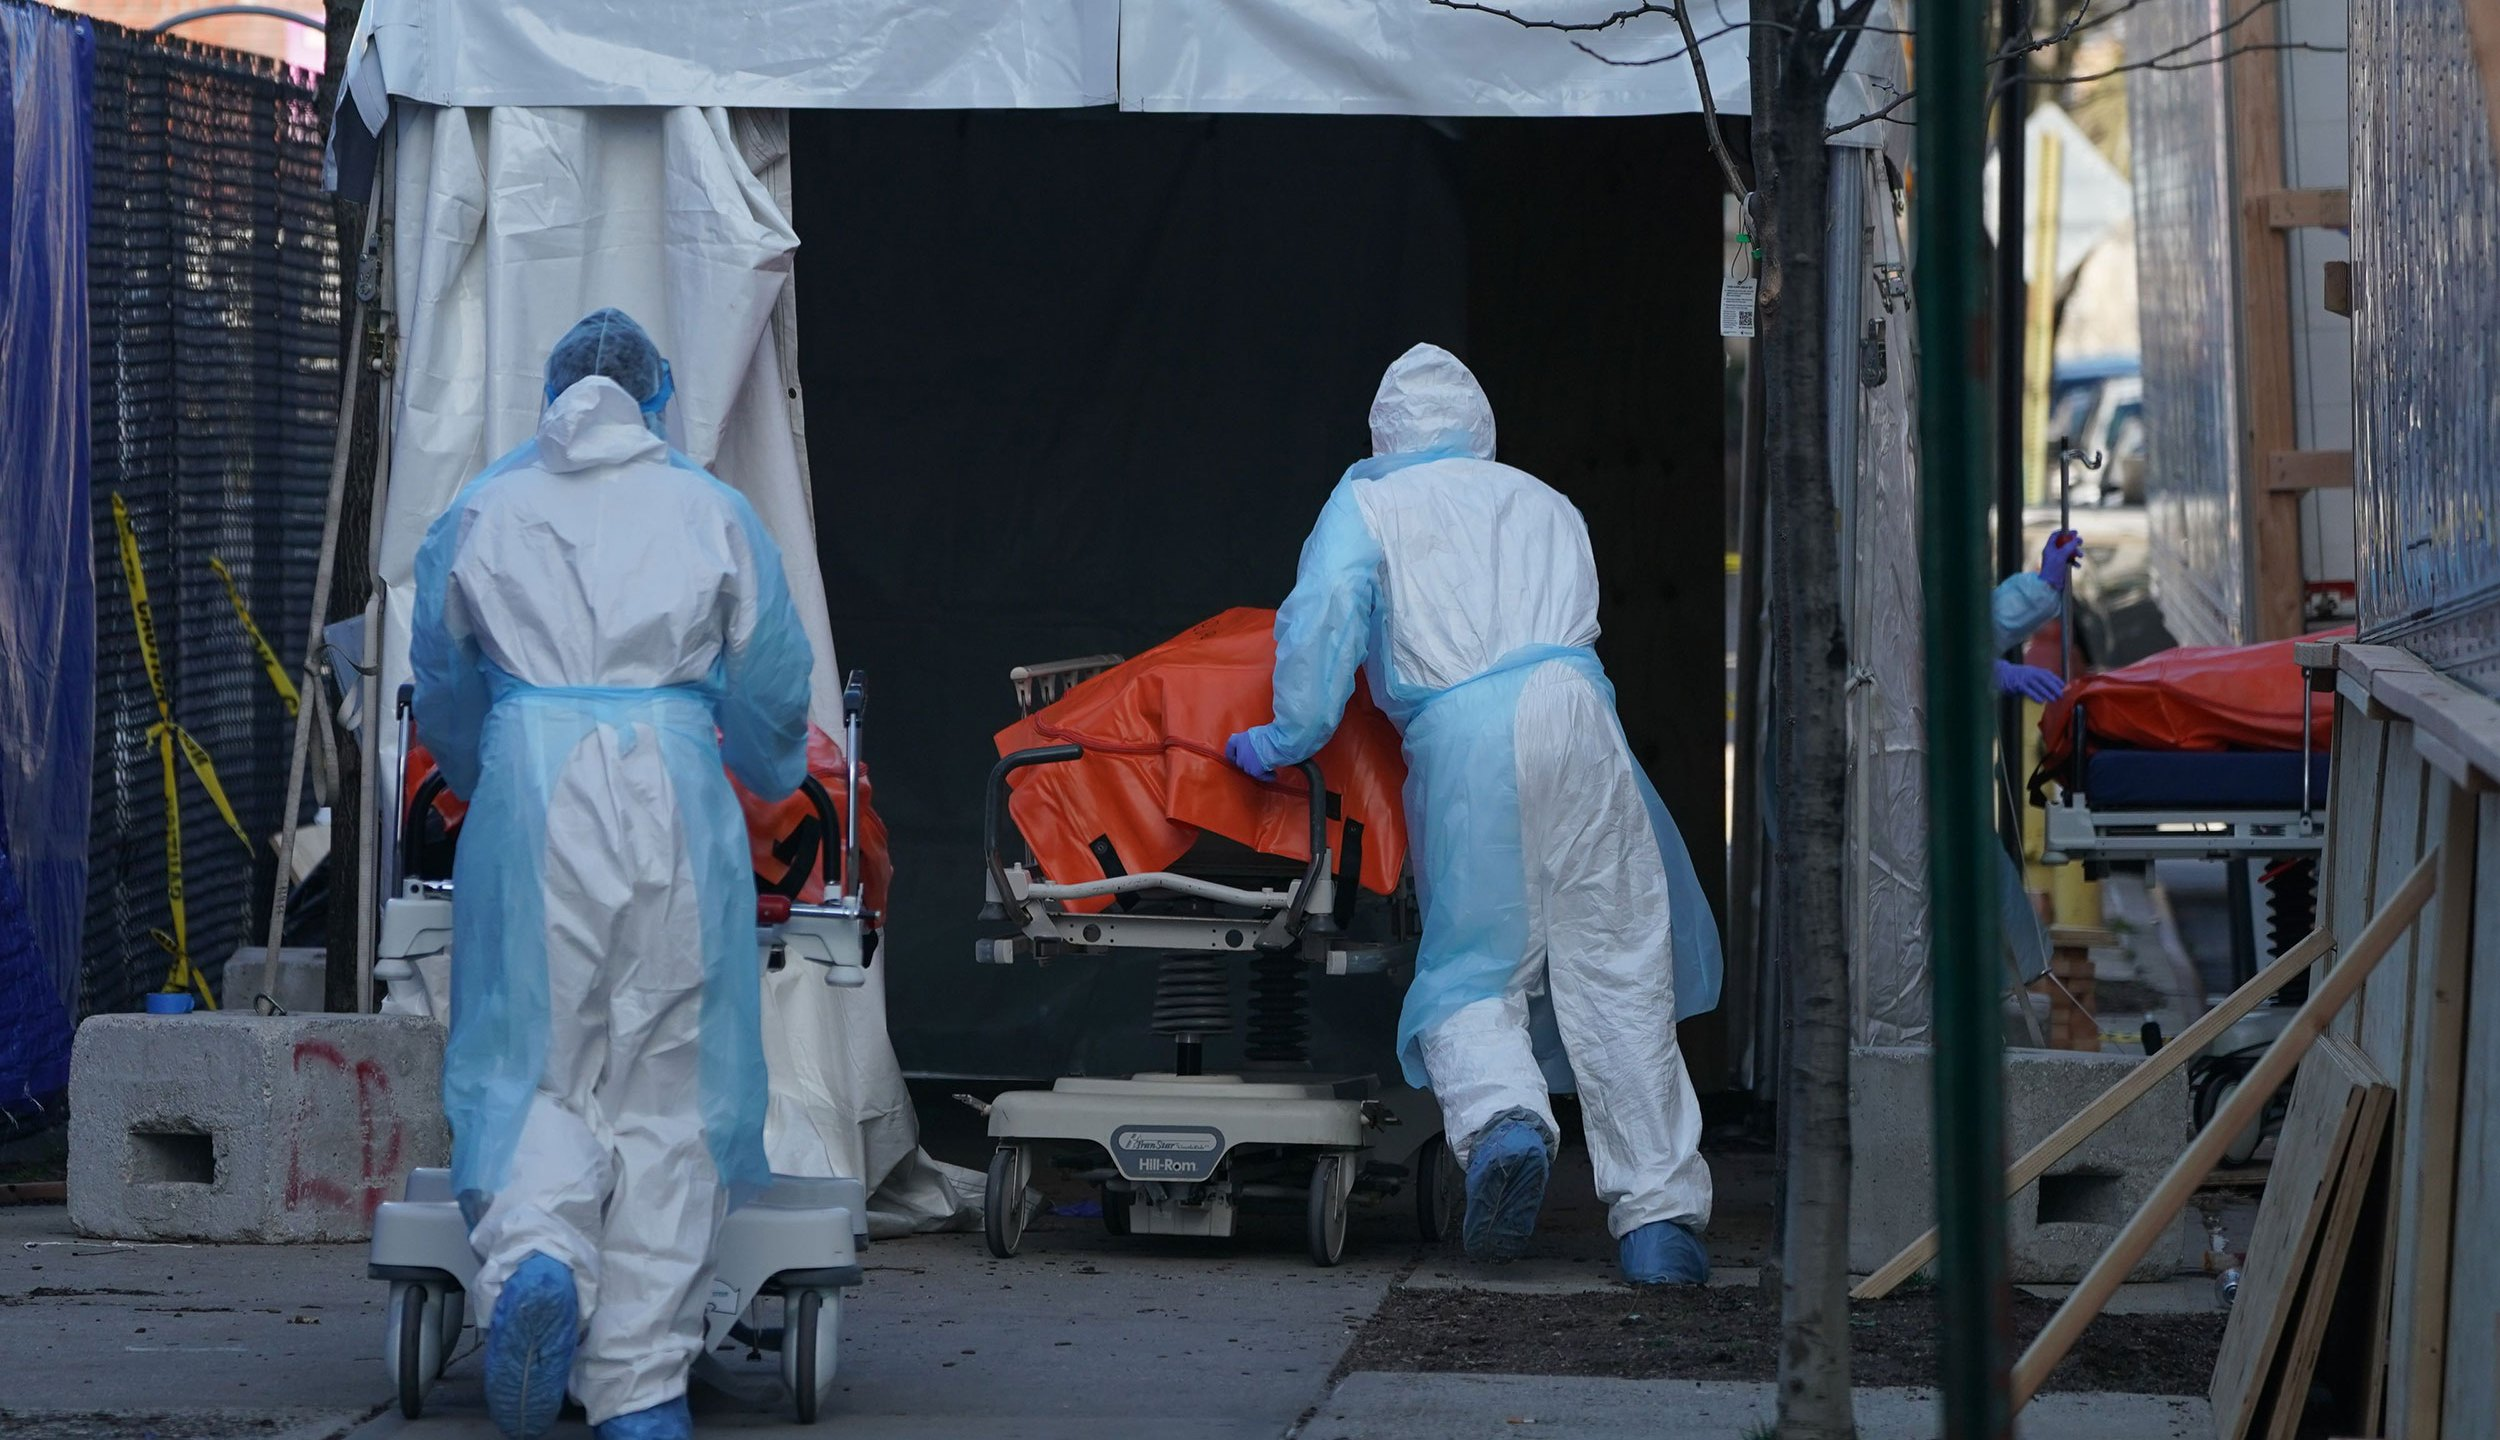 Bodies are moved to a refrigerator truck serving as a temporary morgue outside of Wyckoff Hospital in the Borough of Brooklyn on April 4, 2020 in New York. - New York state's coronavirus toll rose at a devastating pace to 3,565 deaths Saturday, the governor said, up from 2,935 the previous day, the largest 24-hour jump recorded there. (Photo by Bryan R. Smith / AFP)